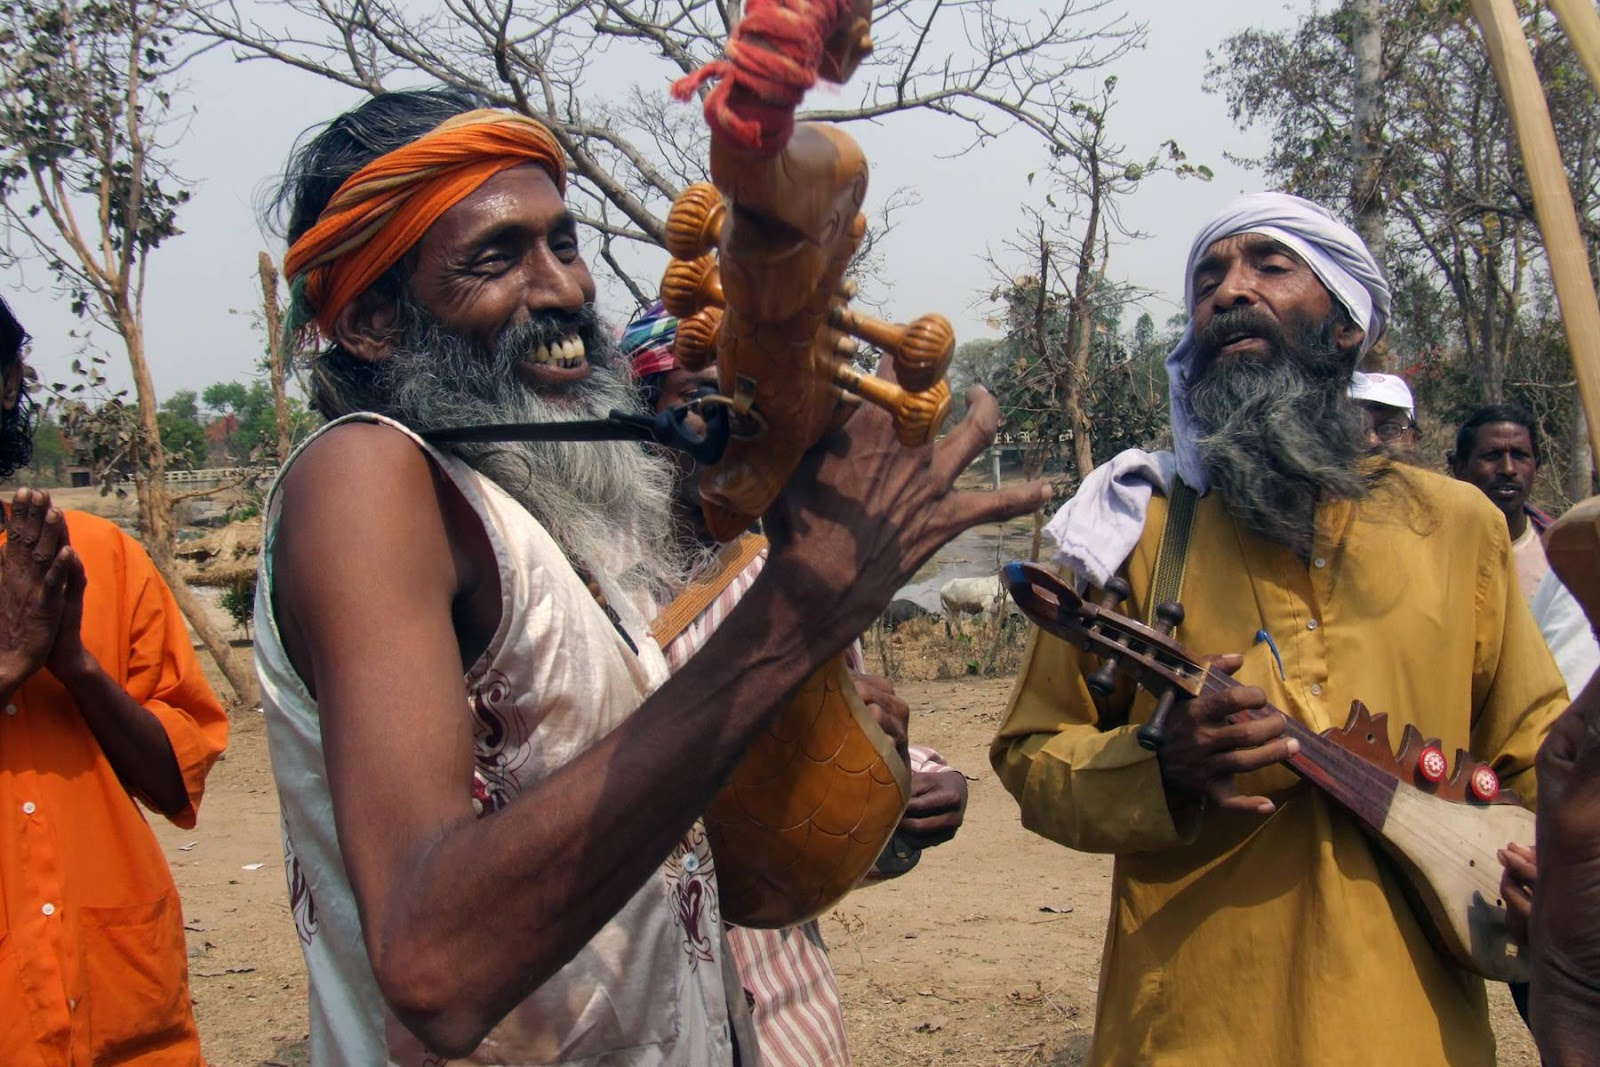 Purulia, West Bengal: Folk